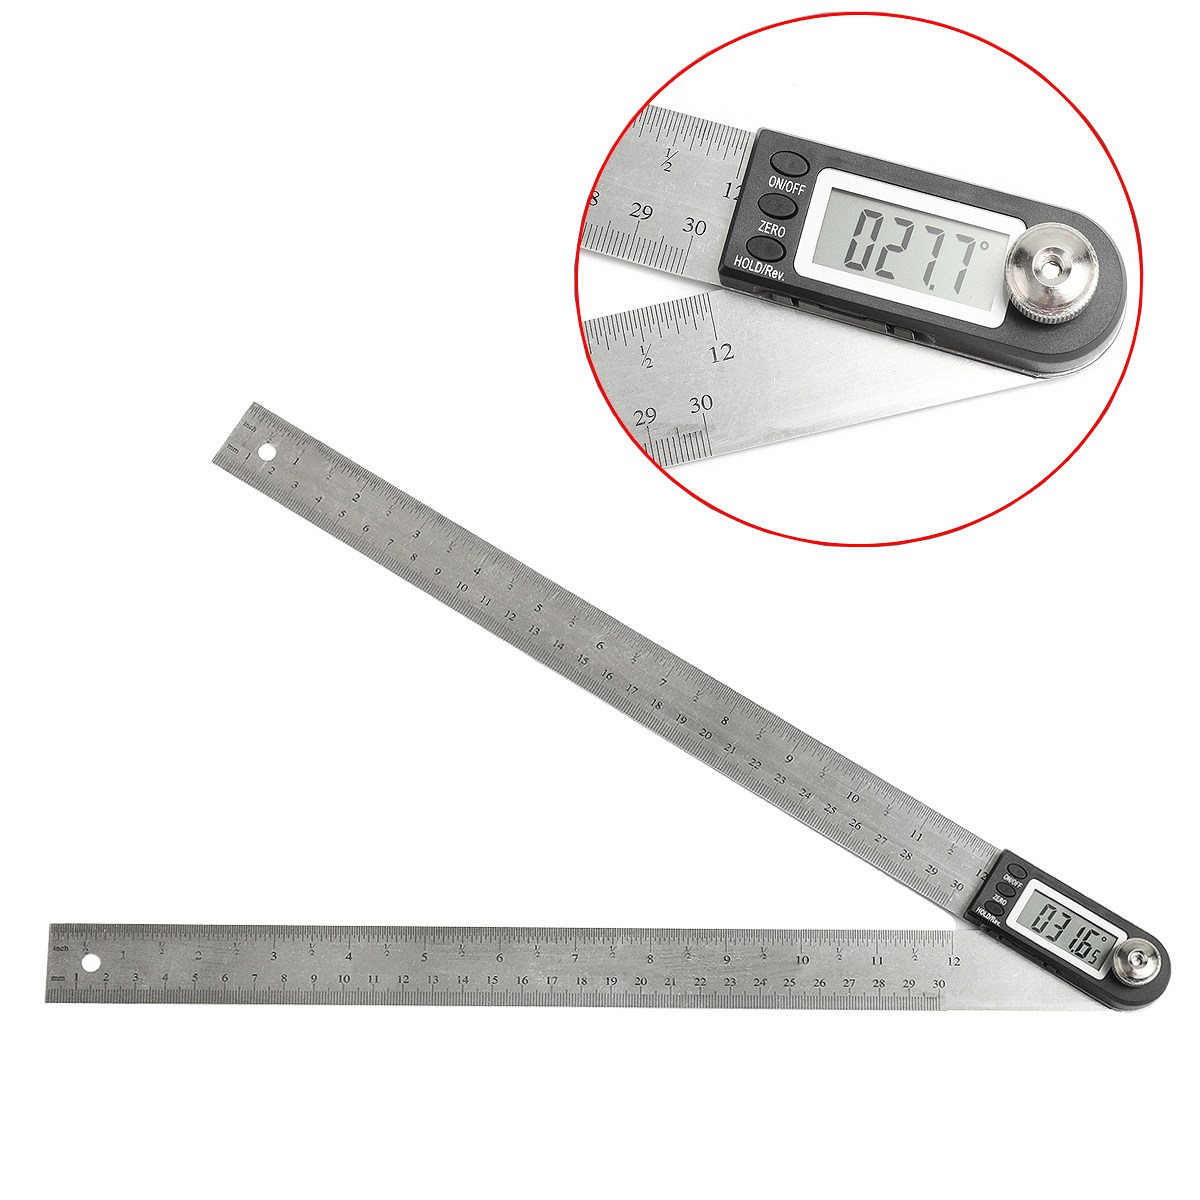 300mm Digital Protractor Inclinometer Goniometer Level Measuring Tool Electronic Angle Gauge Stainless Steel Angle Ruler 12 2 in 1 200mm 300mm stainless steel digital angle ruler protractor level measuring tool electronic metal digital straight rulers